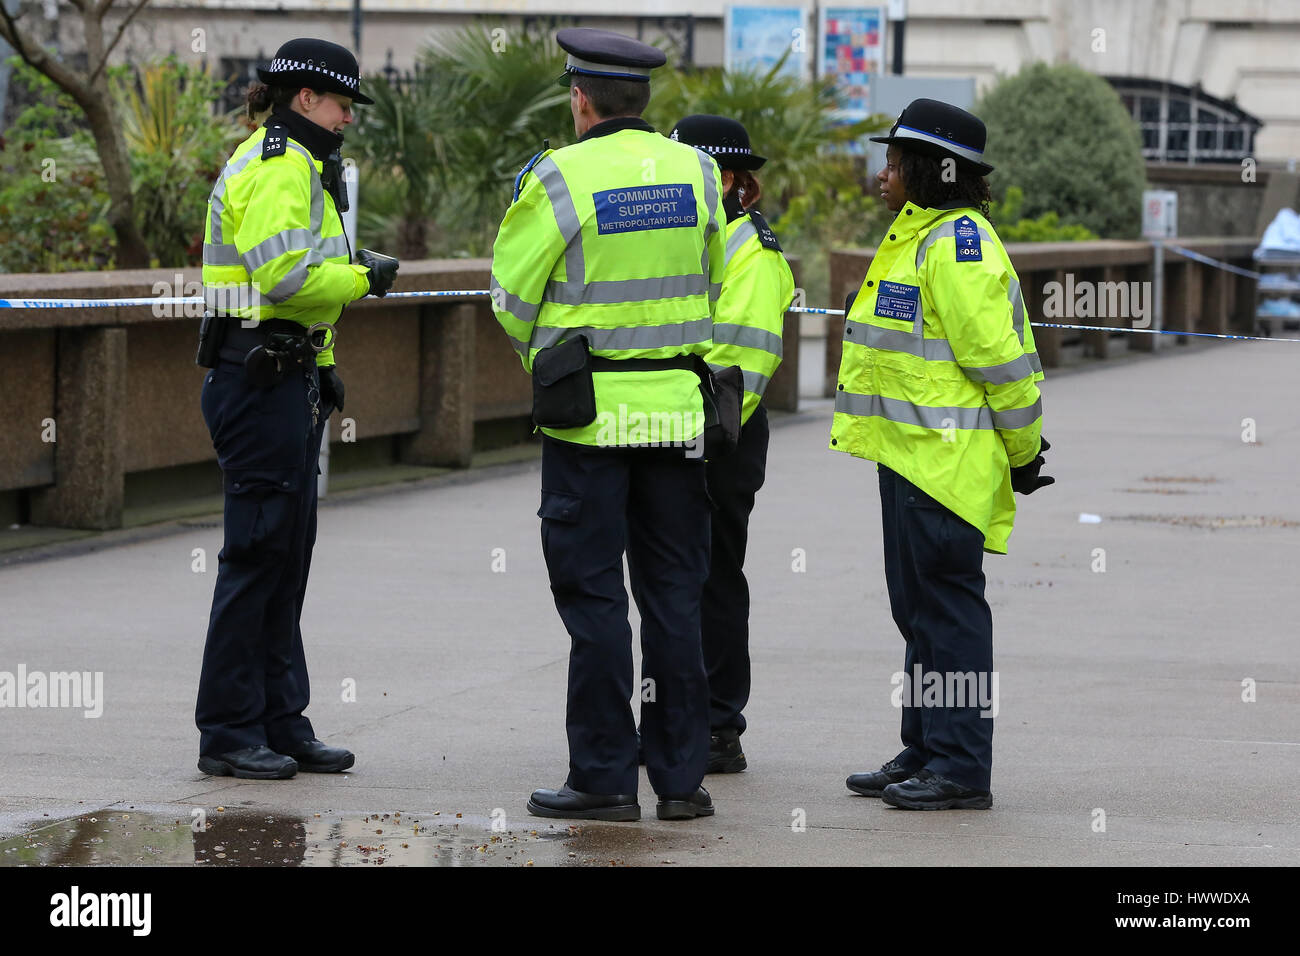 Westminster, London, UK 23 Mar 2017- Police Officers outside St Thomas Hospital. Scotland Yard said on 23 March 2017 that police have made seven arrests in raids carried out over night in Birmingham London and elsewhere in the country after the terror attack in the Westminister Palace grounds and on Westminster Bridge on 22 March 2017 leaving four people dead, including the attacker, and 29 people injured. Credit: Dinendra Haria/Alamy Live News Stock Photo